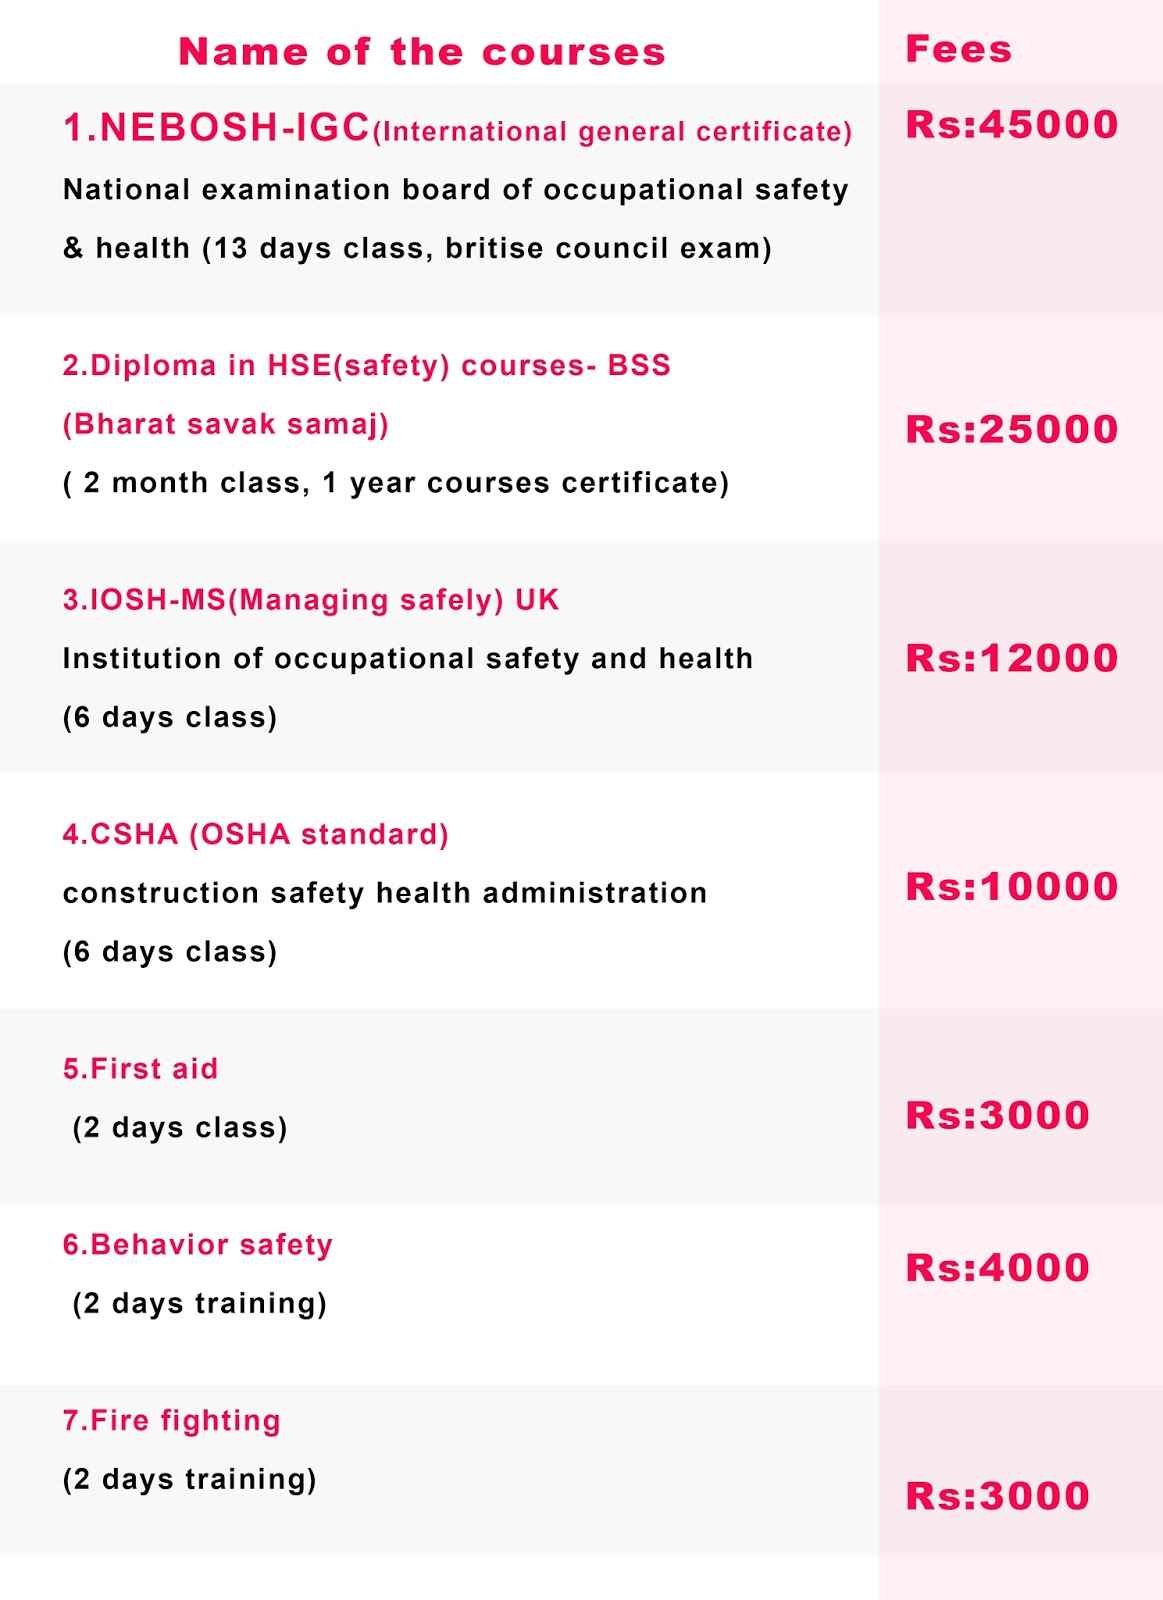 FEES DETAILS - Safety Courses in Chennai